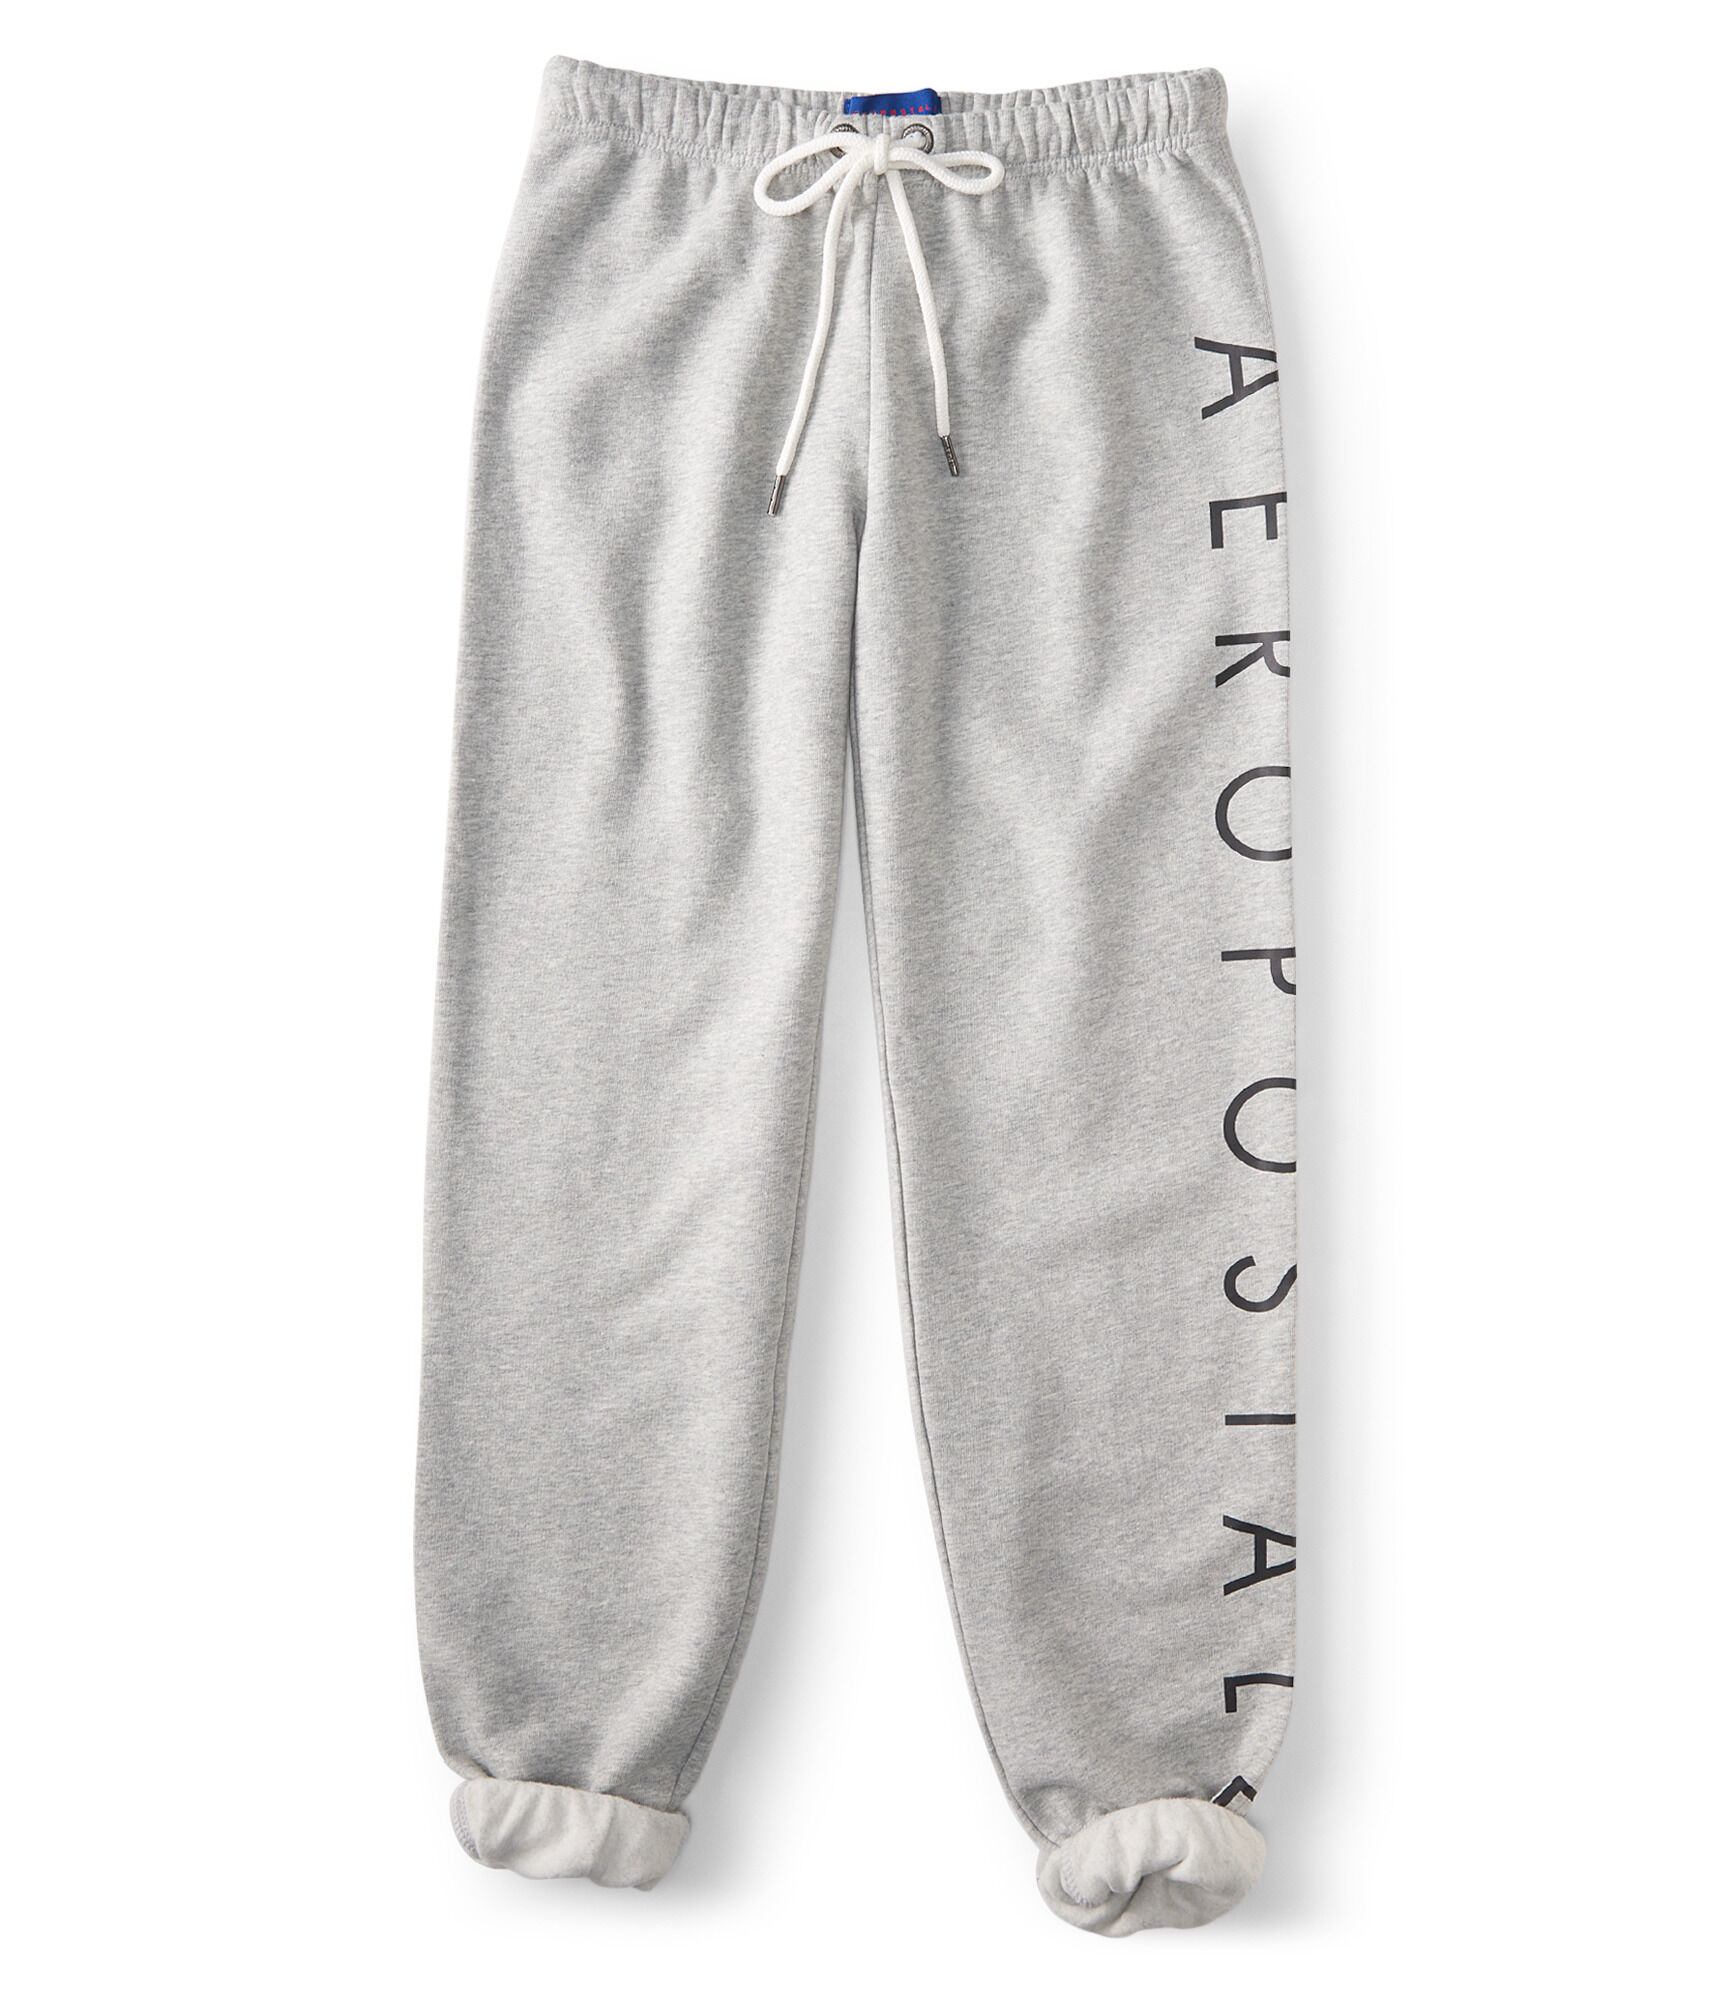 Boyfriend Aeropostale sweatpants best photo